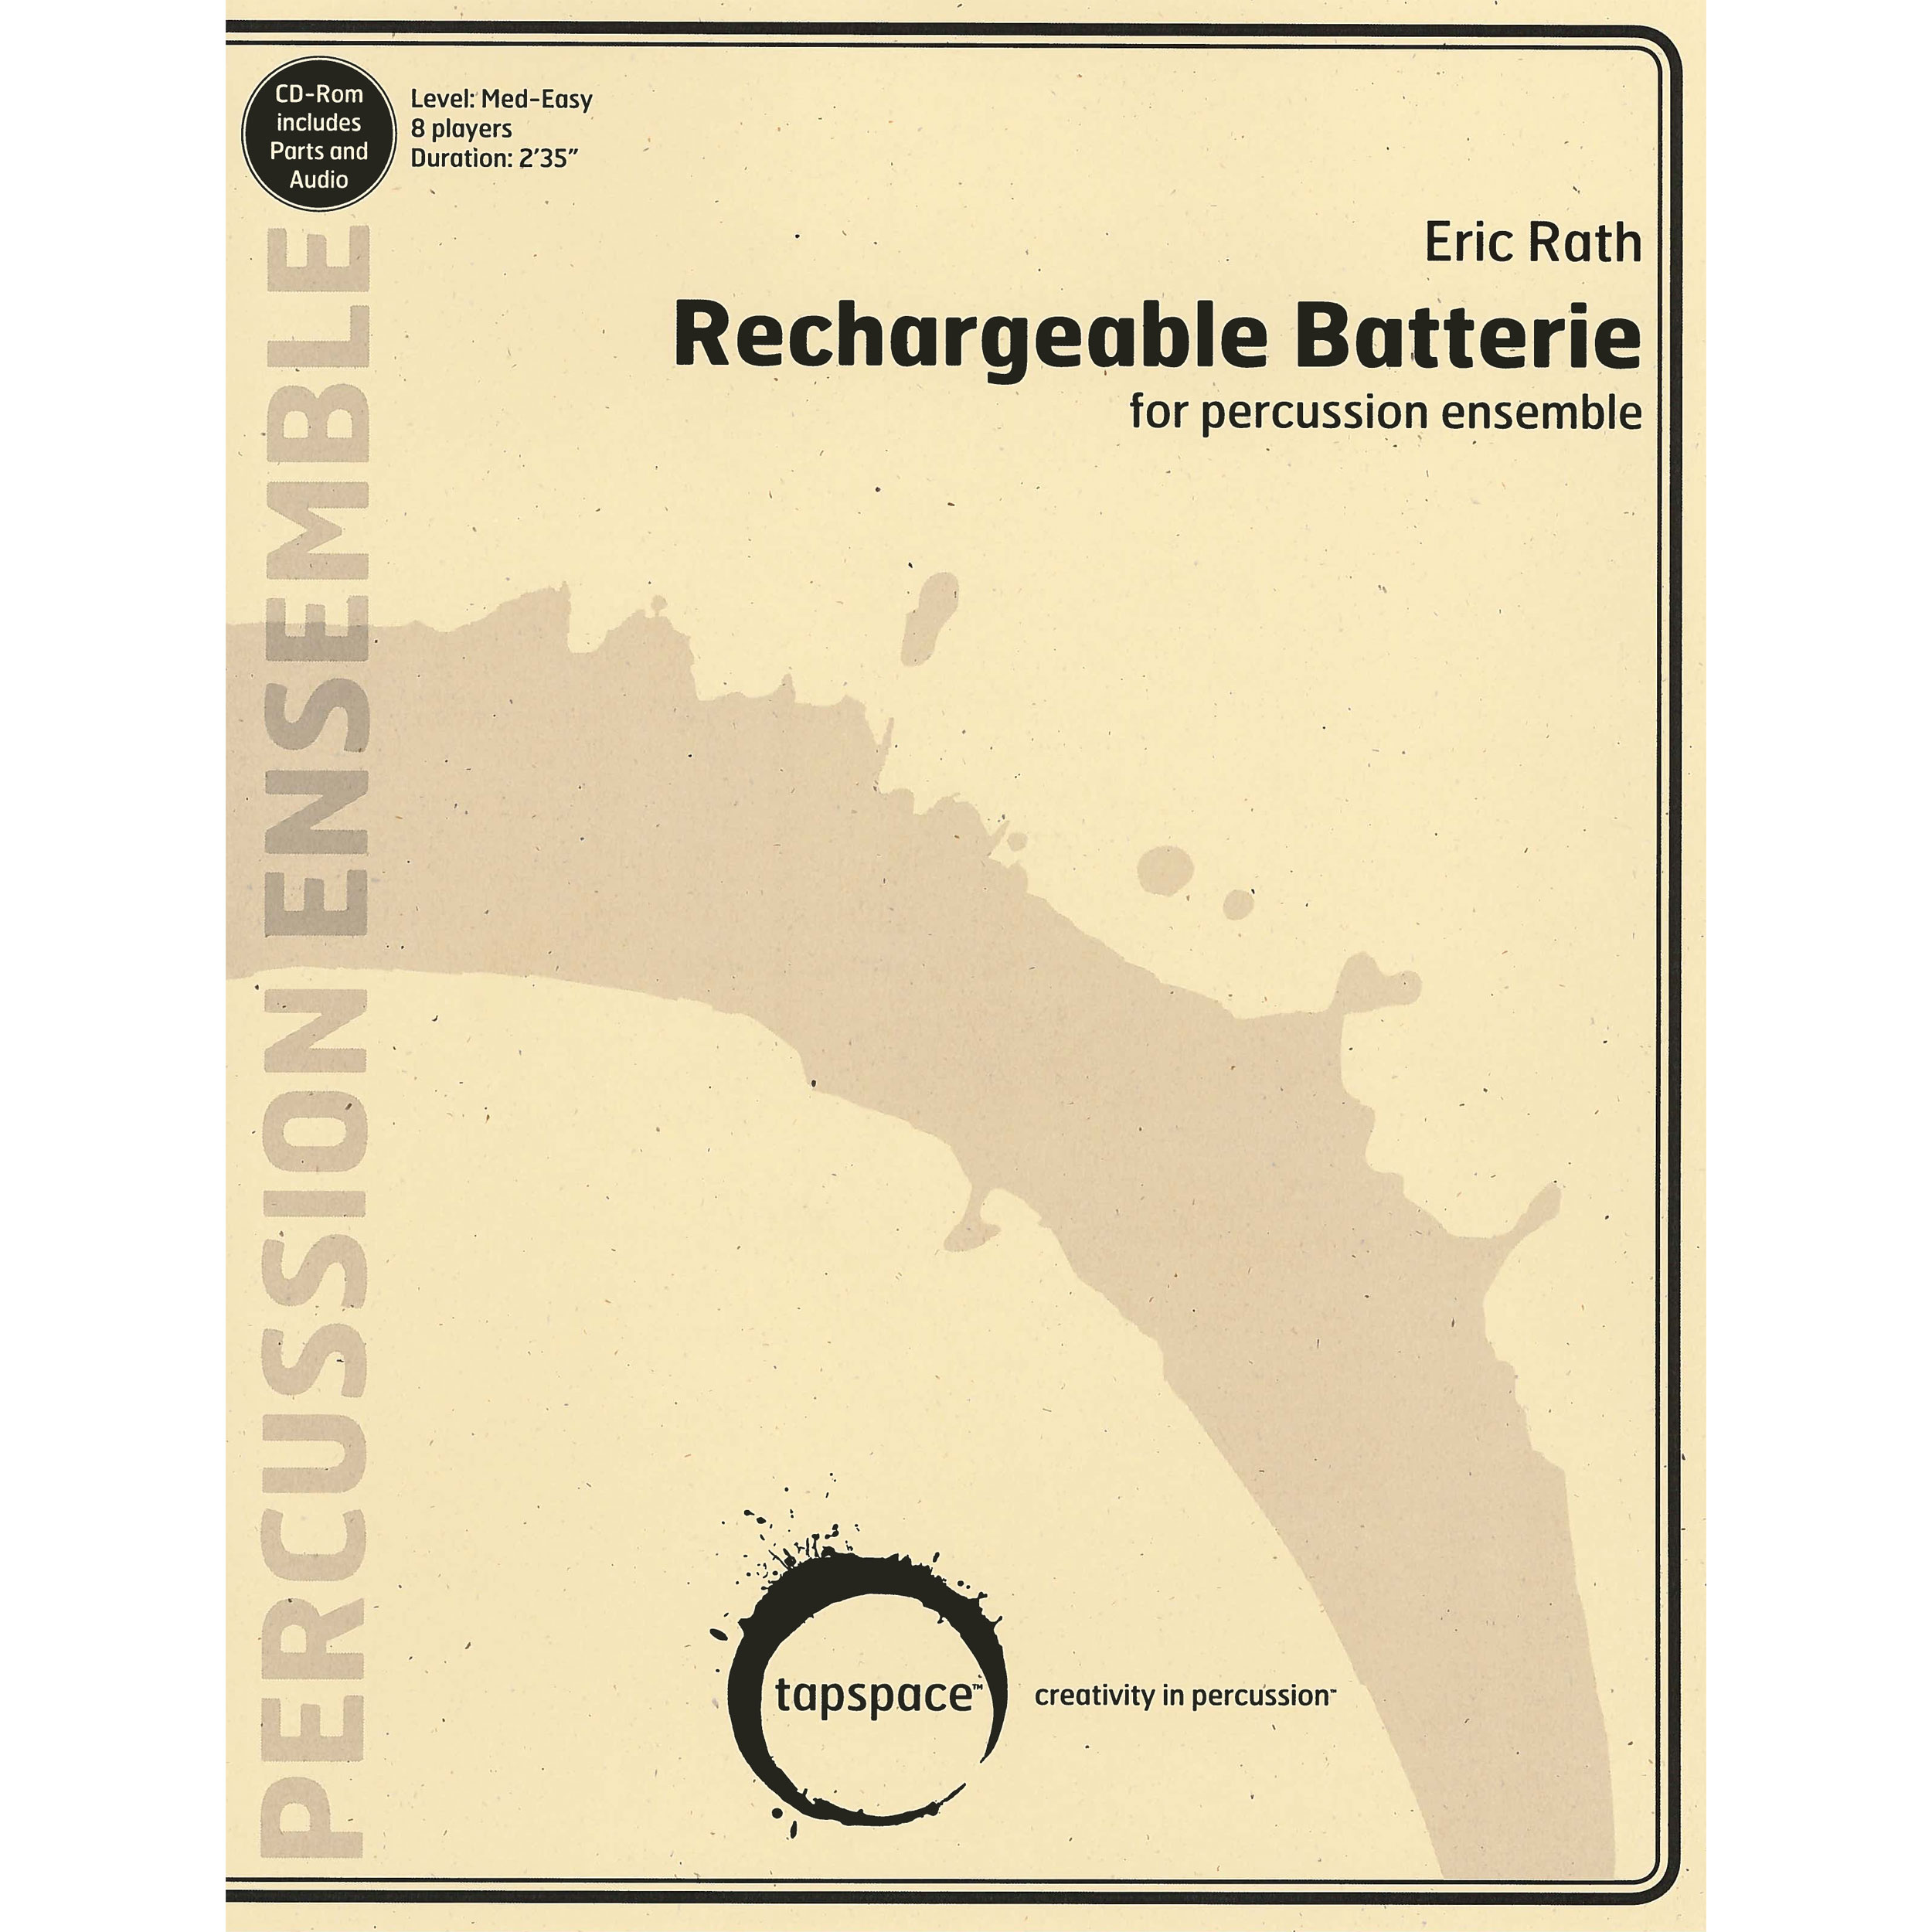 Rechargeable Batterie by Eric Rath